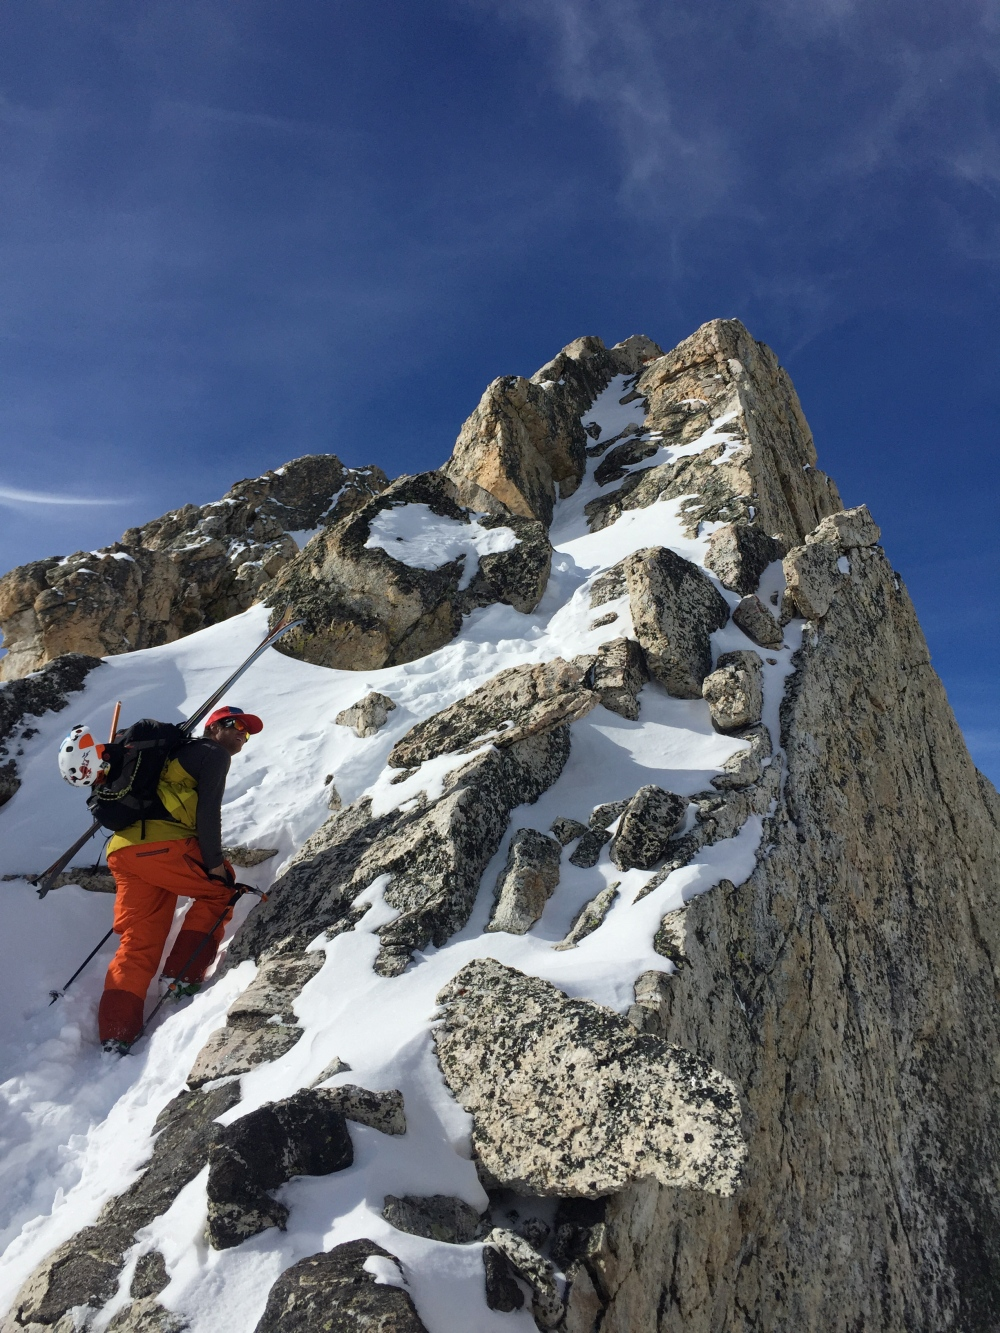 Tanner Flanagan Climbing to the Summit of Disappointment Peak